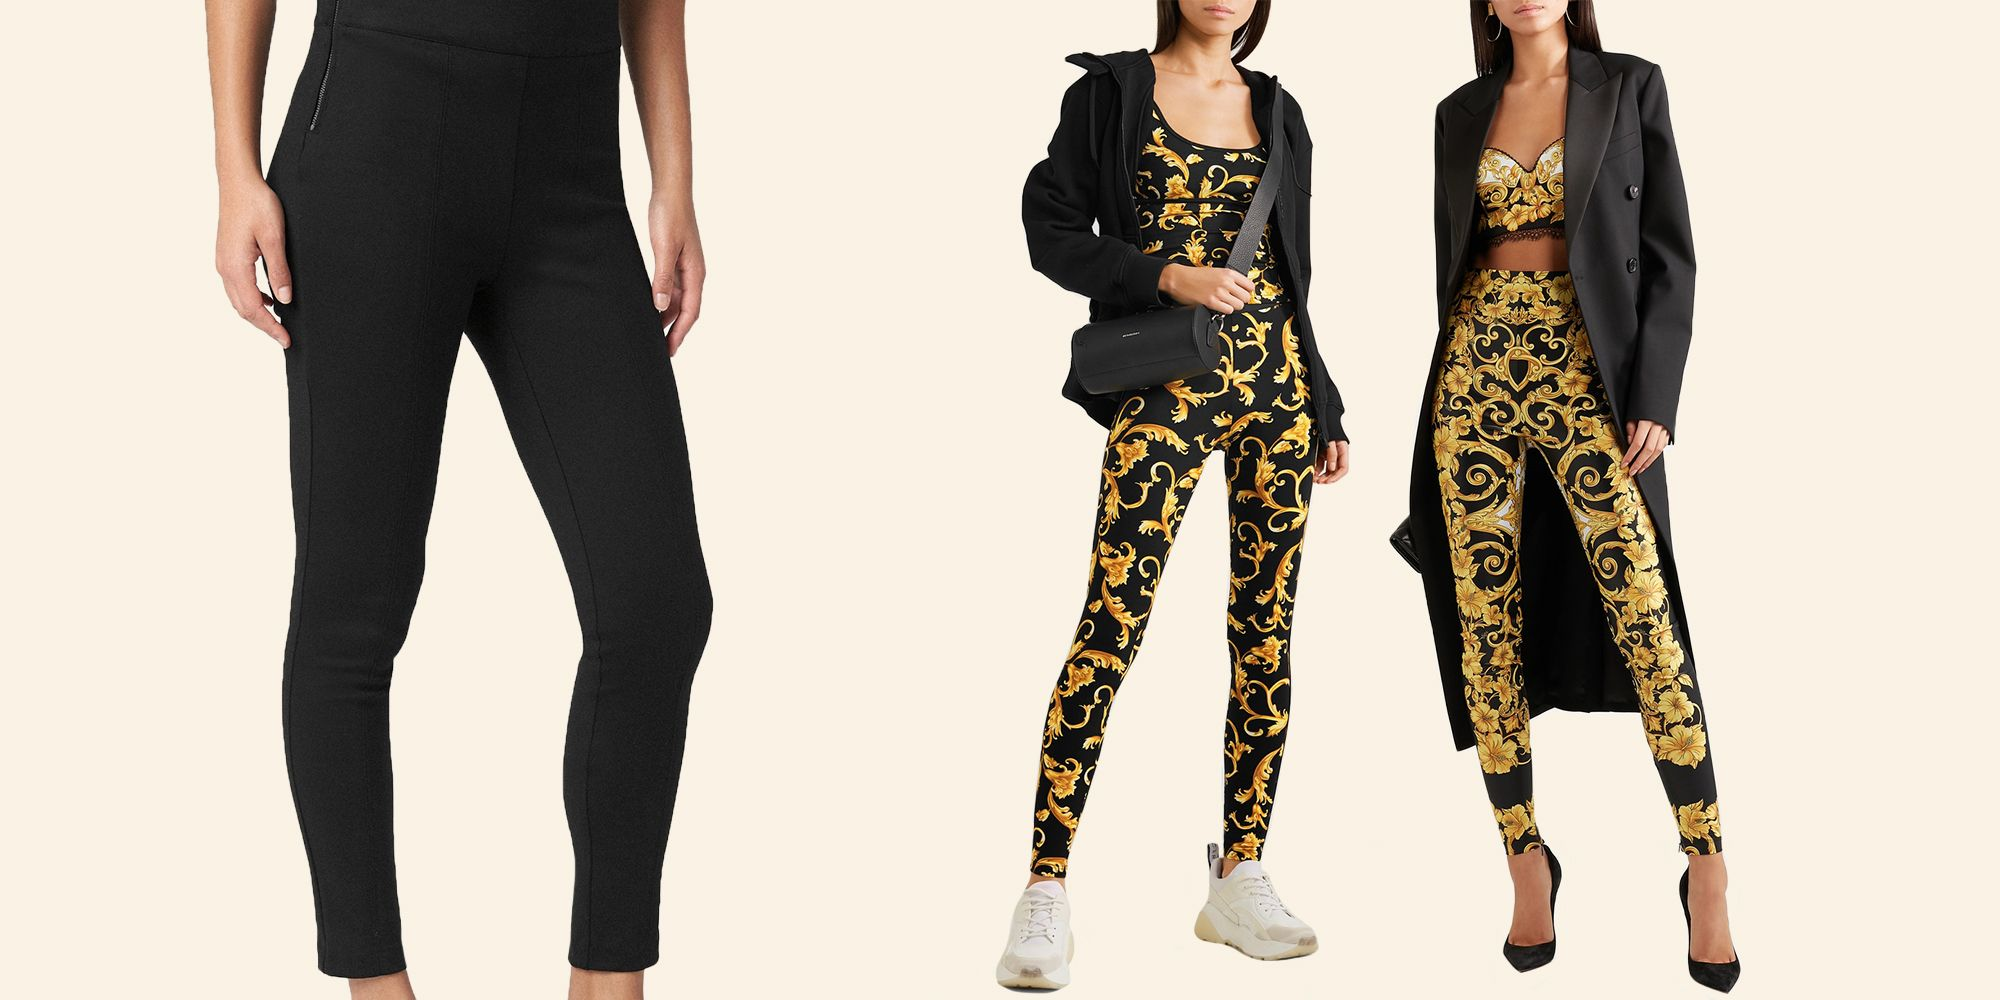 8d5eb5e2ae32f 7 Best Leggings of 2019 for Every Occasion